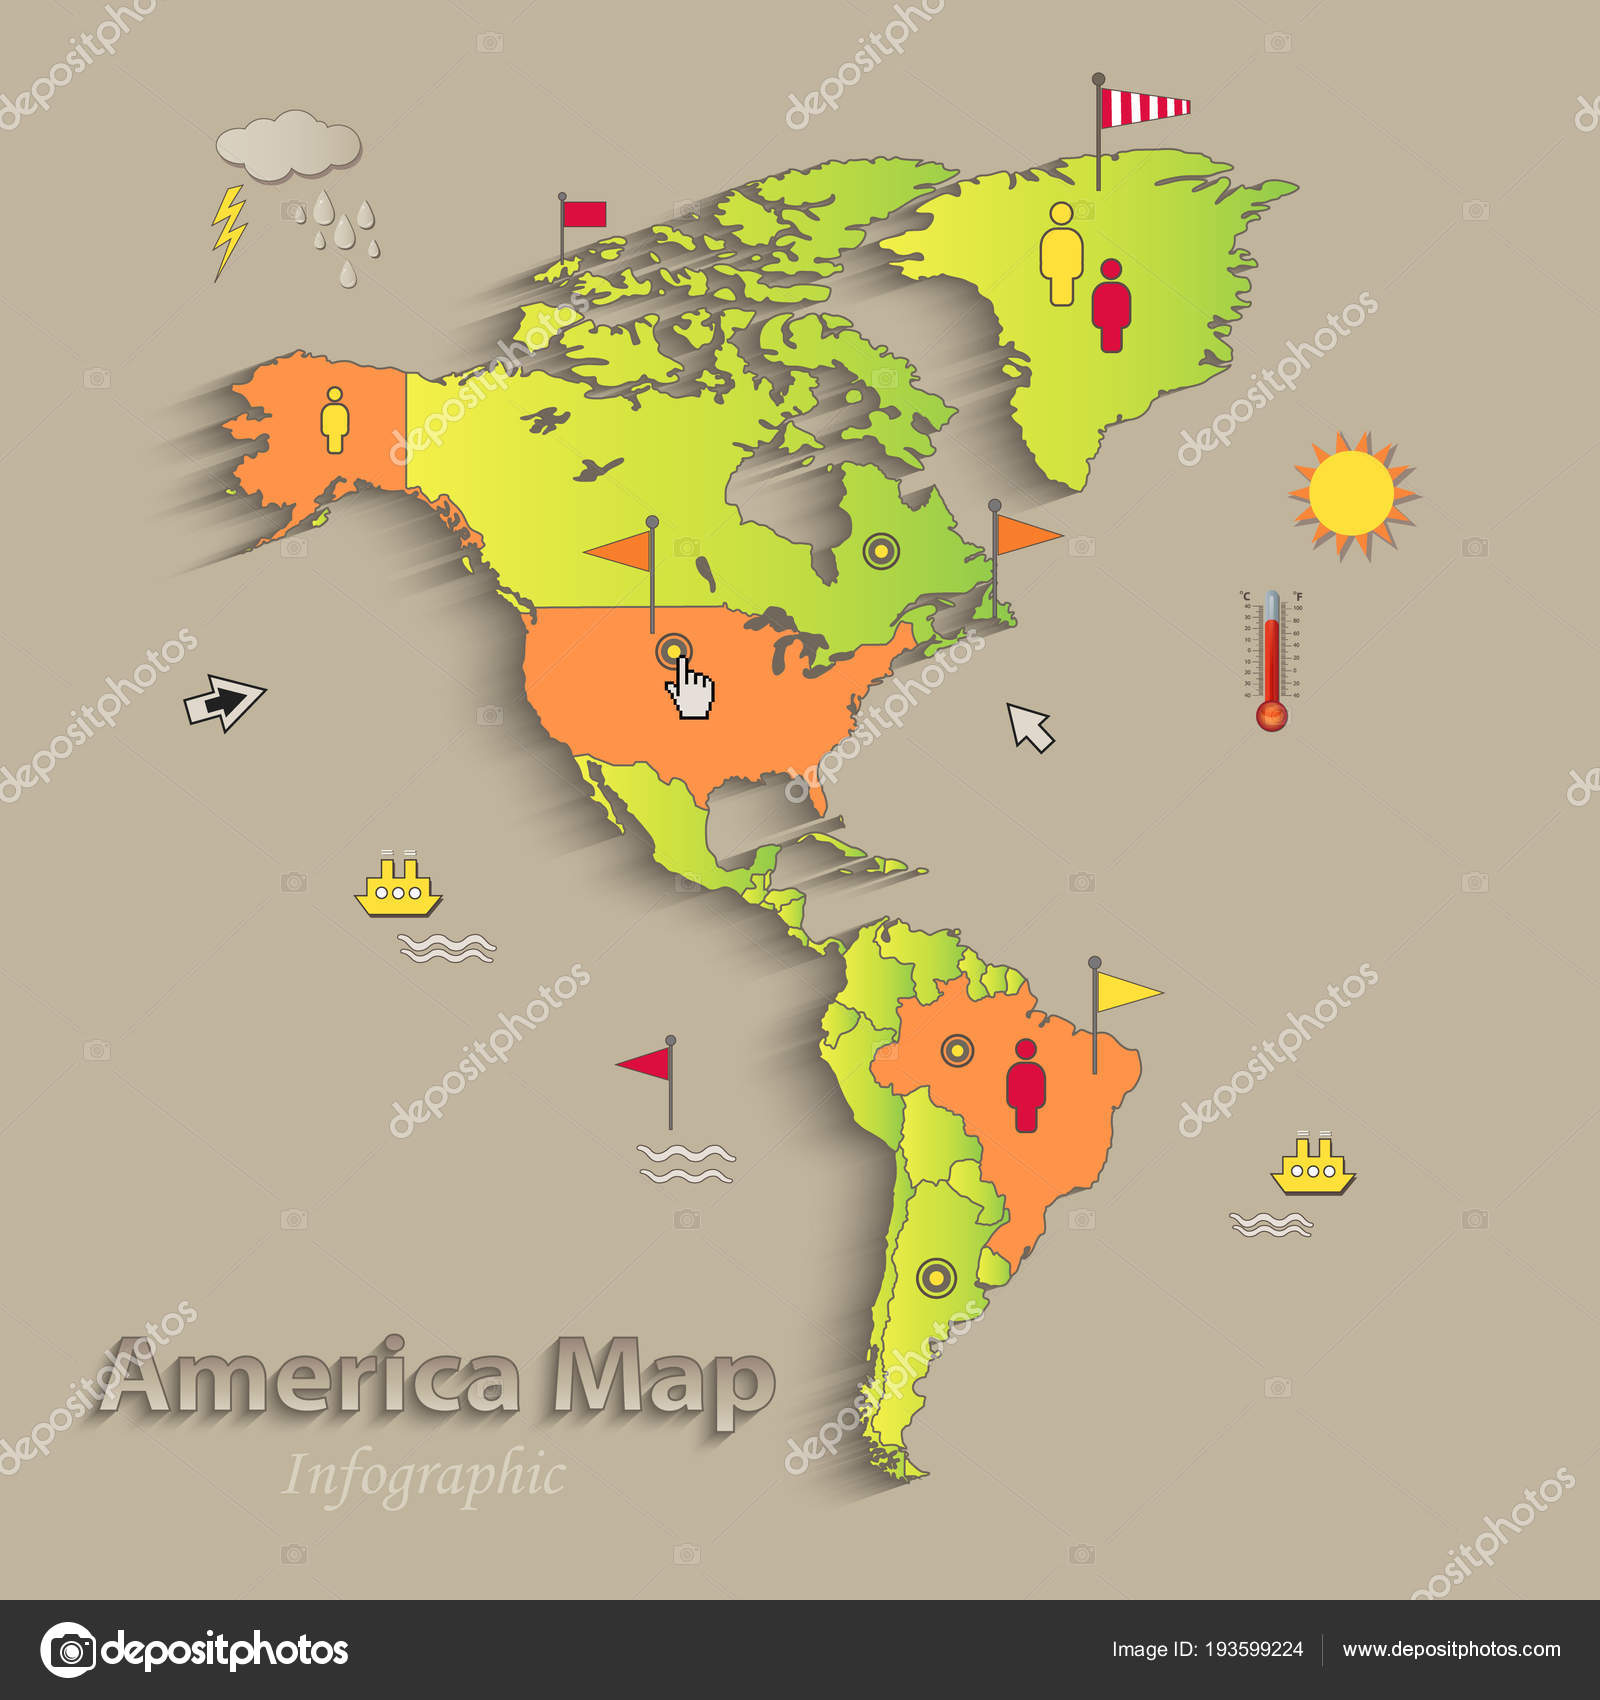 Image of: America Map Separate States Infographics Political Map Individual States Vector Stock Vector C Mondi H 193599224